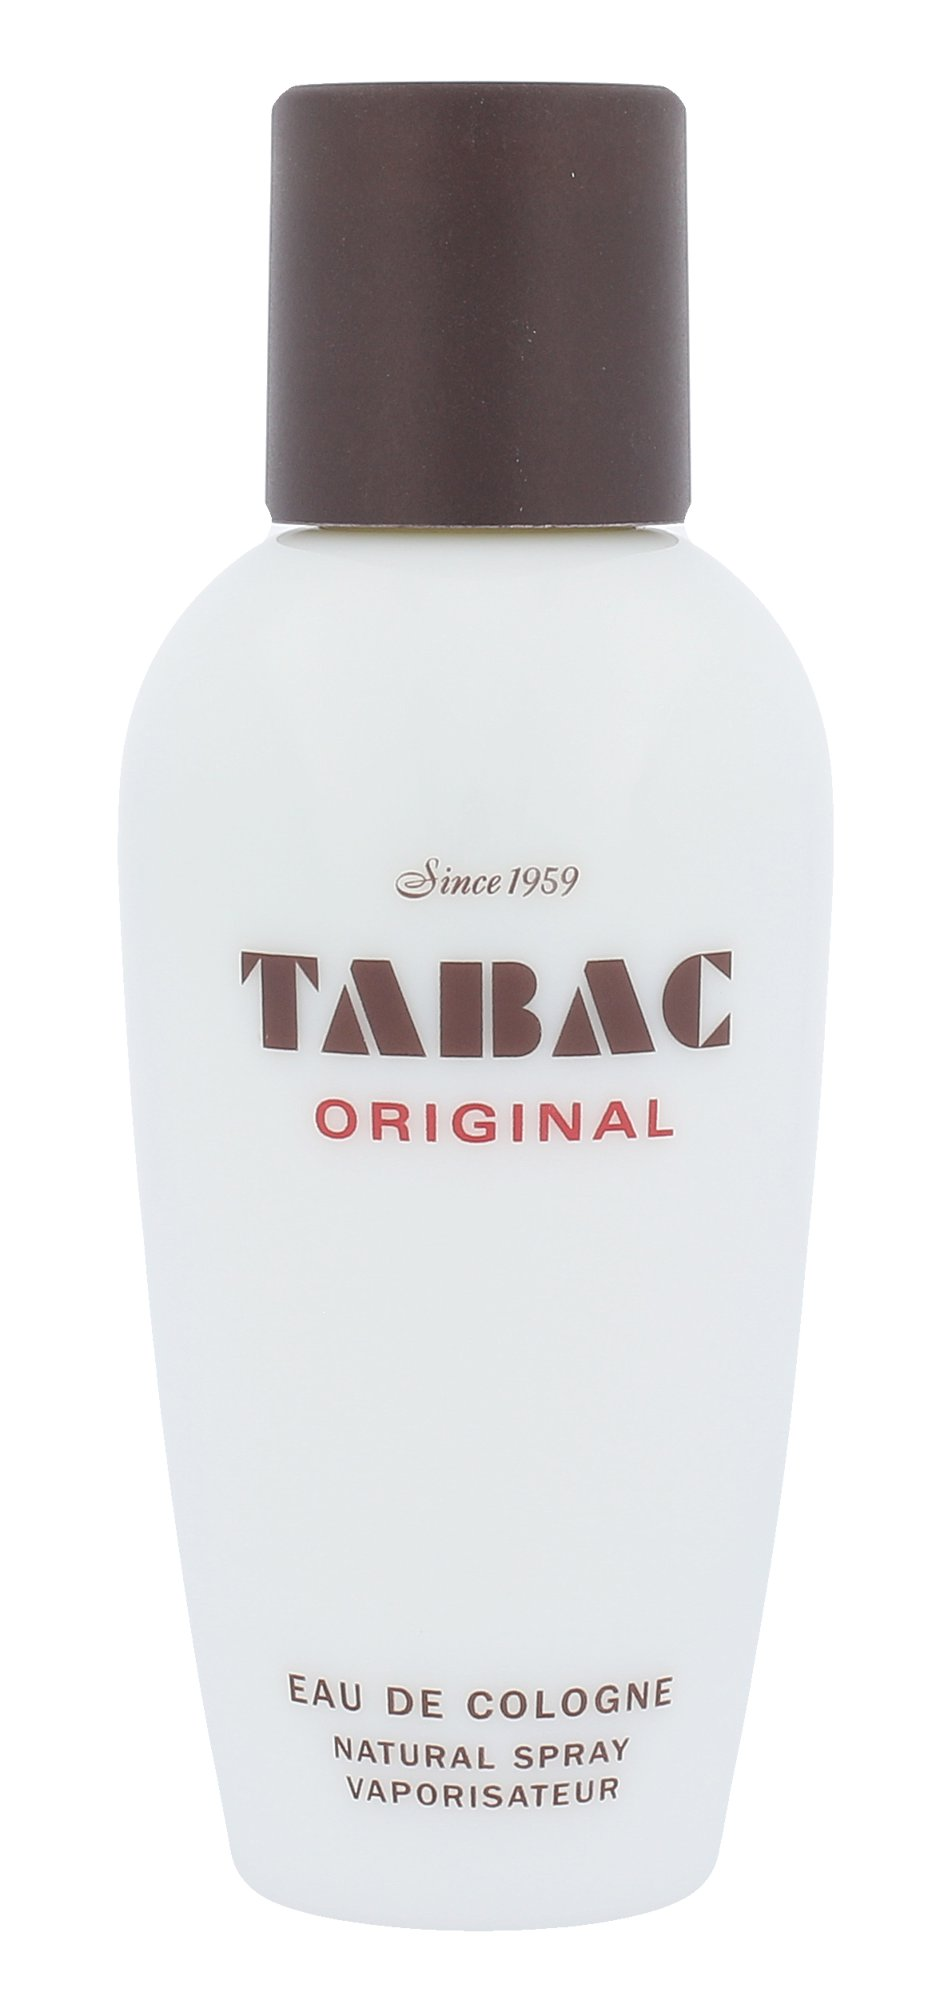 TABAC Original, edt 100ml